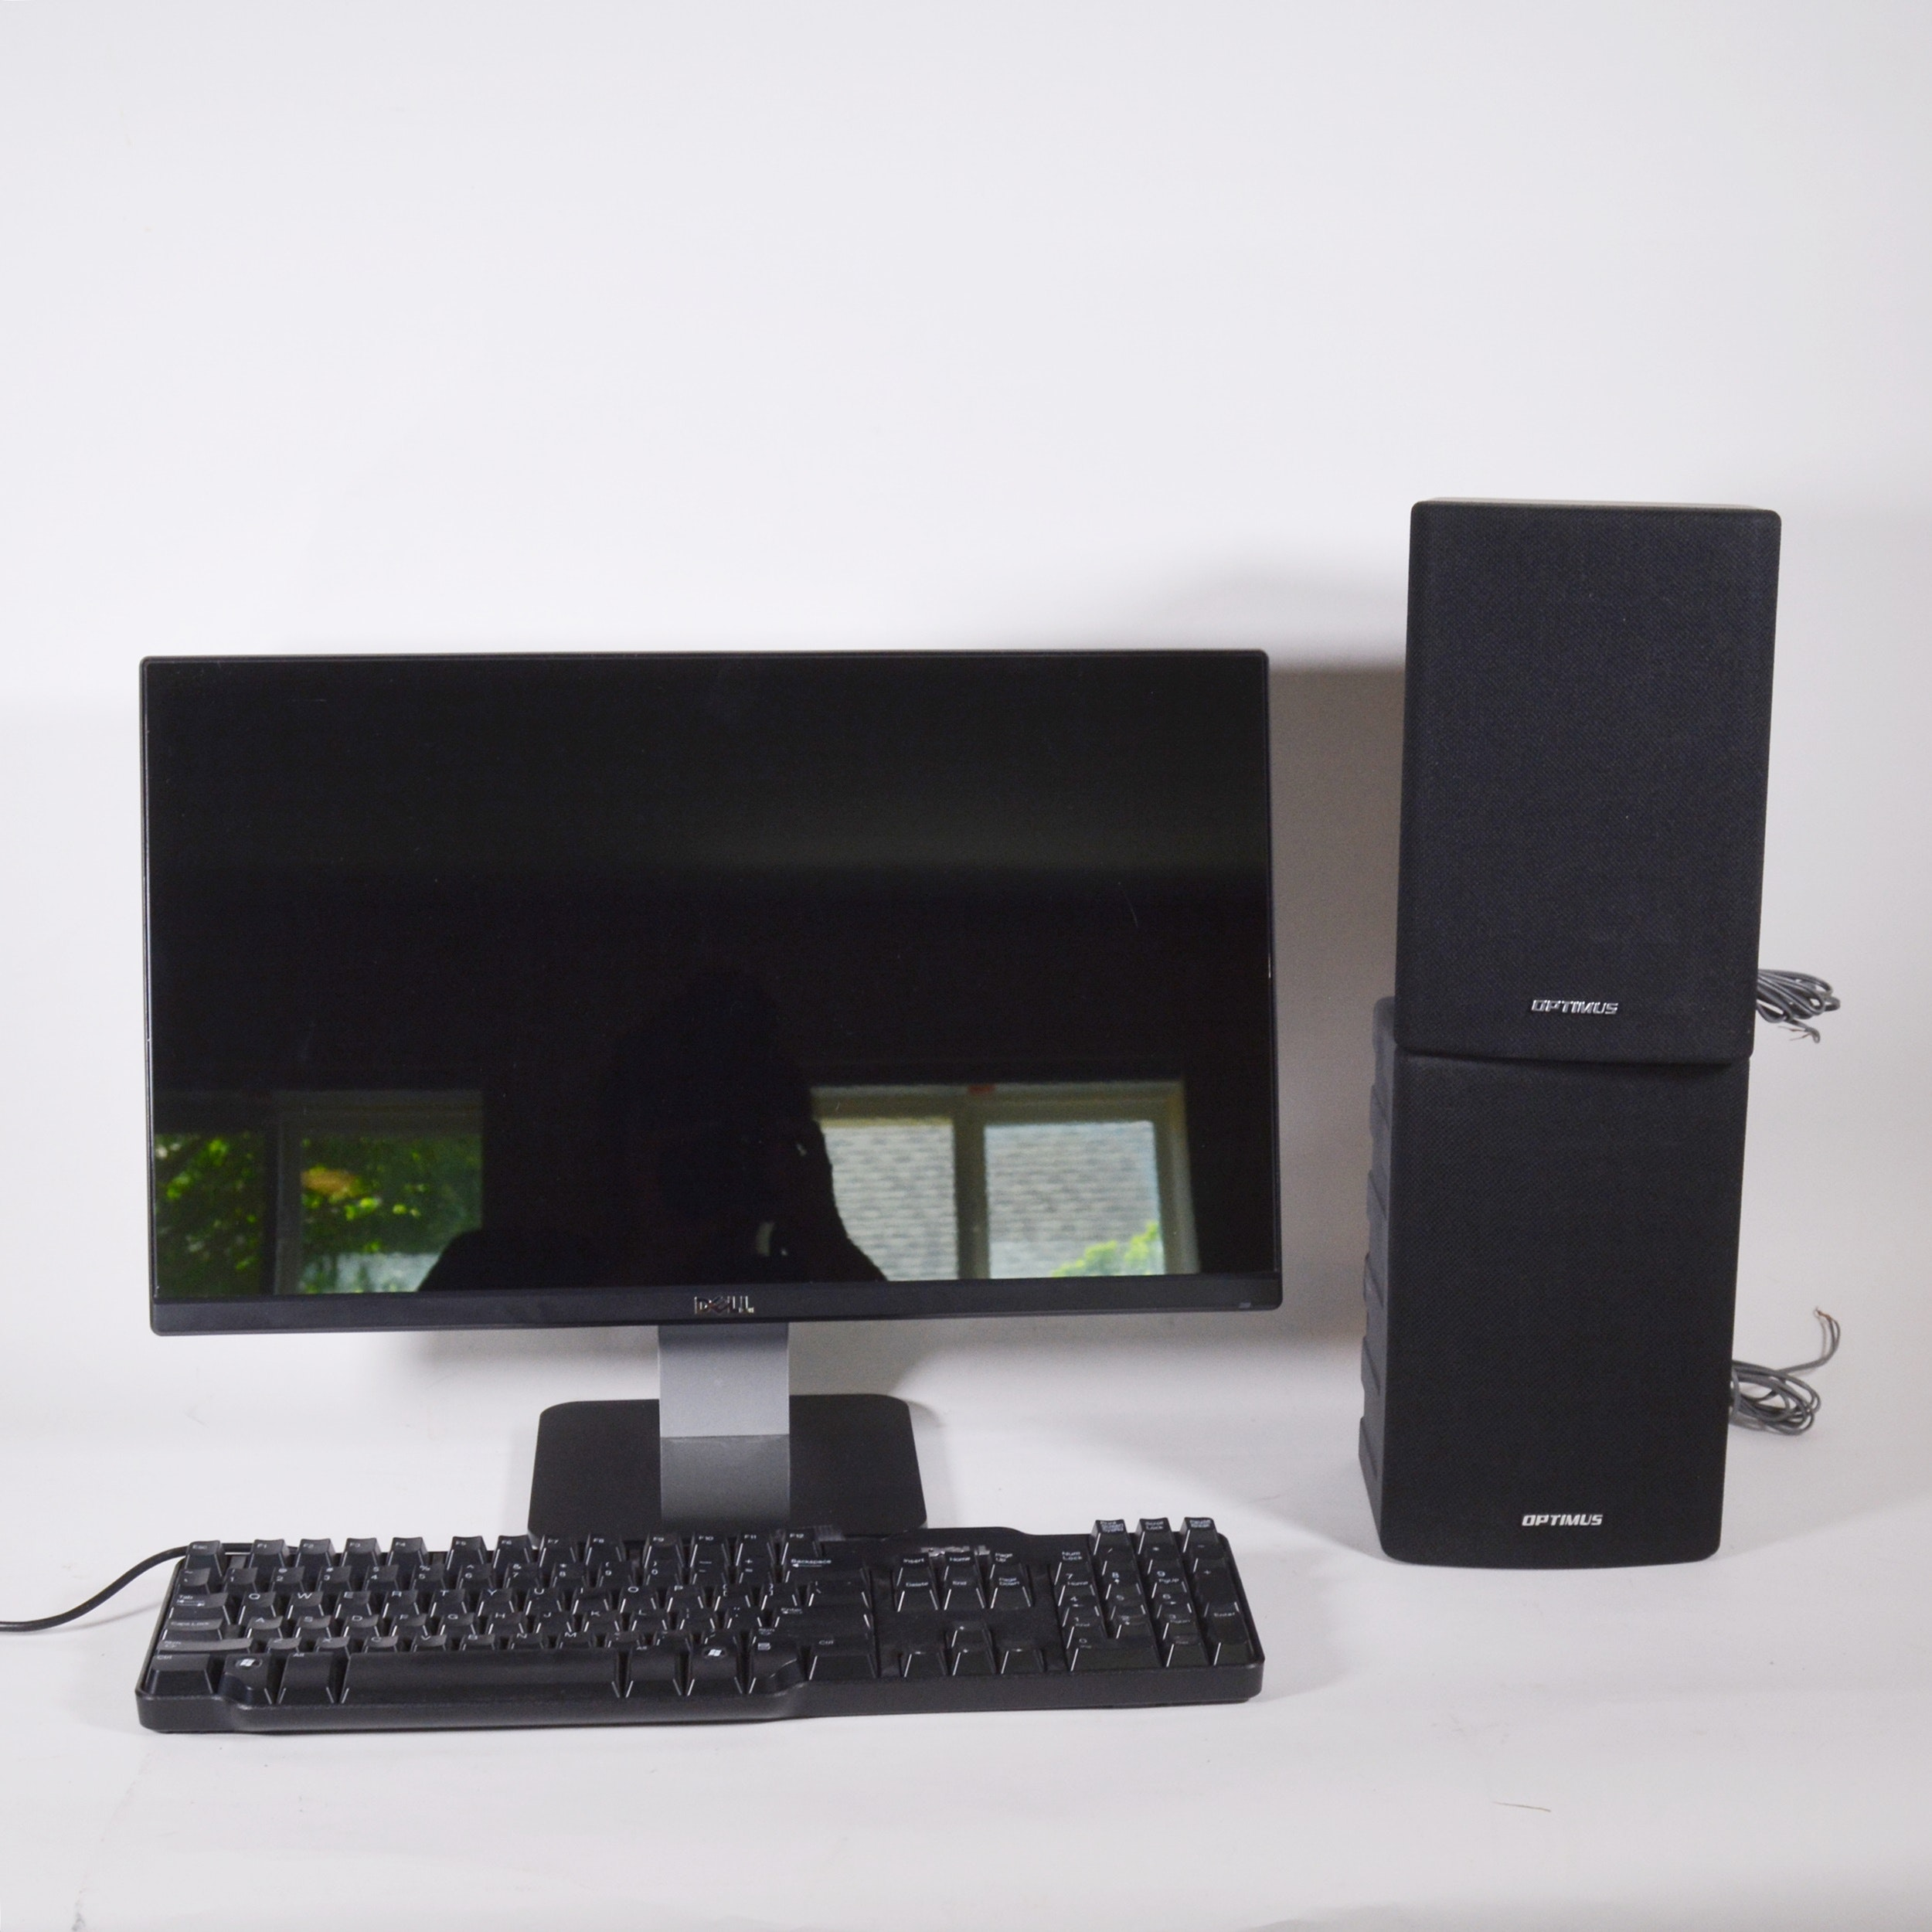 "Dell 22"" LCD Monitor, Keyboard and Optimus Speakers"